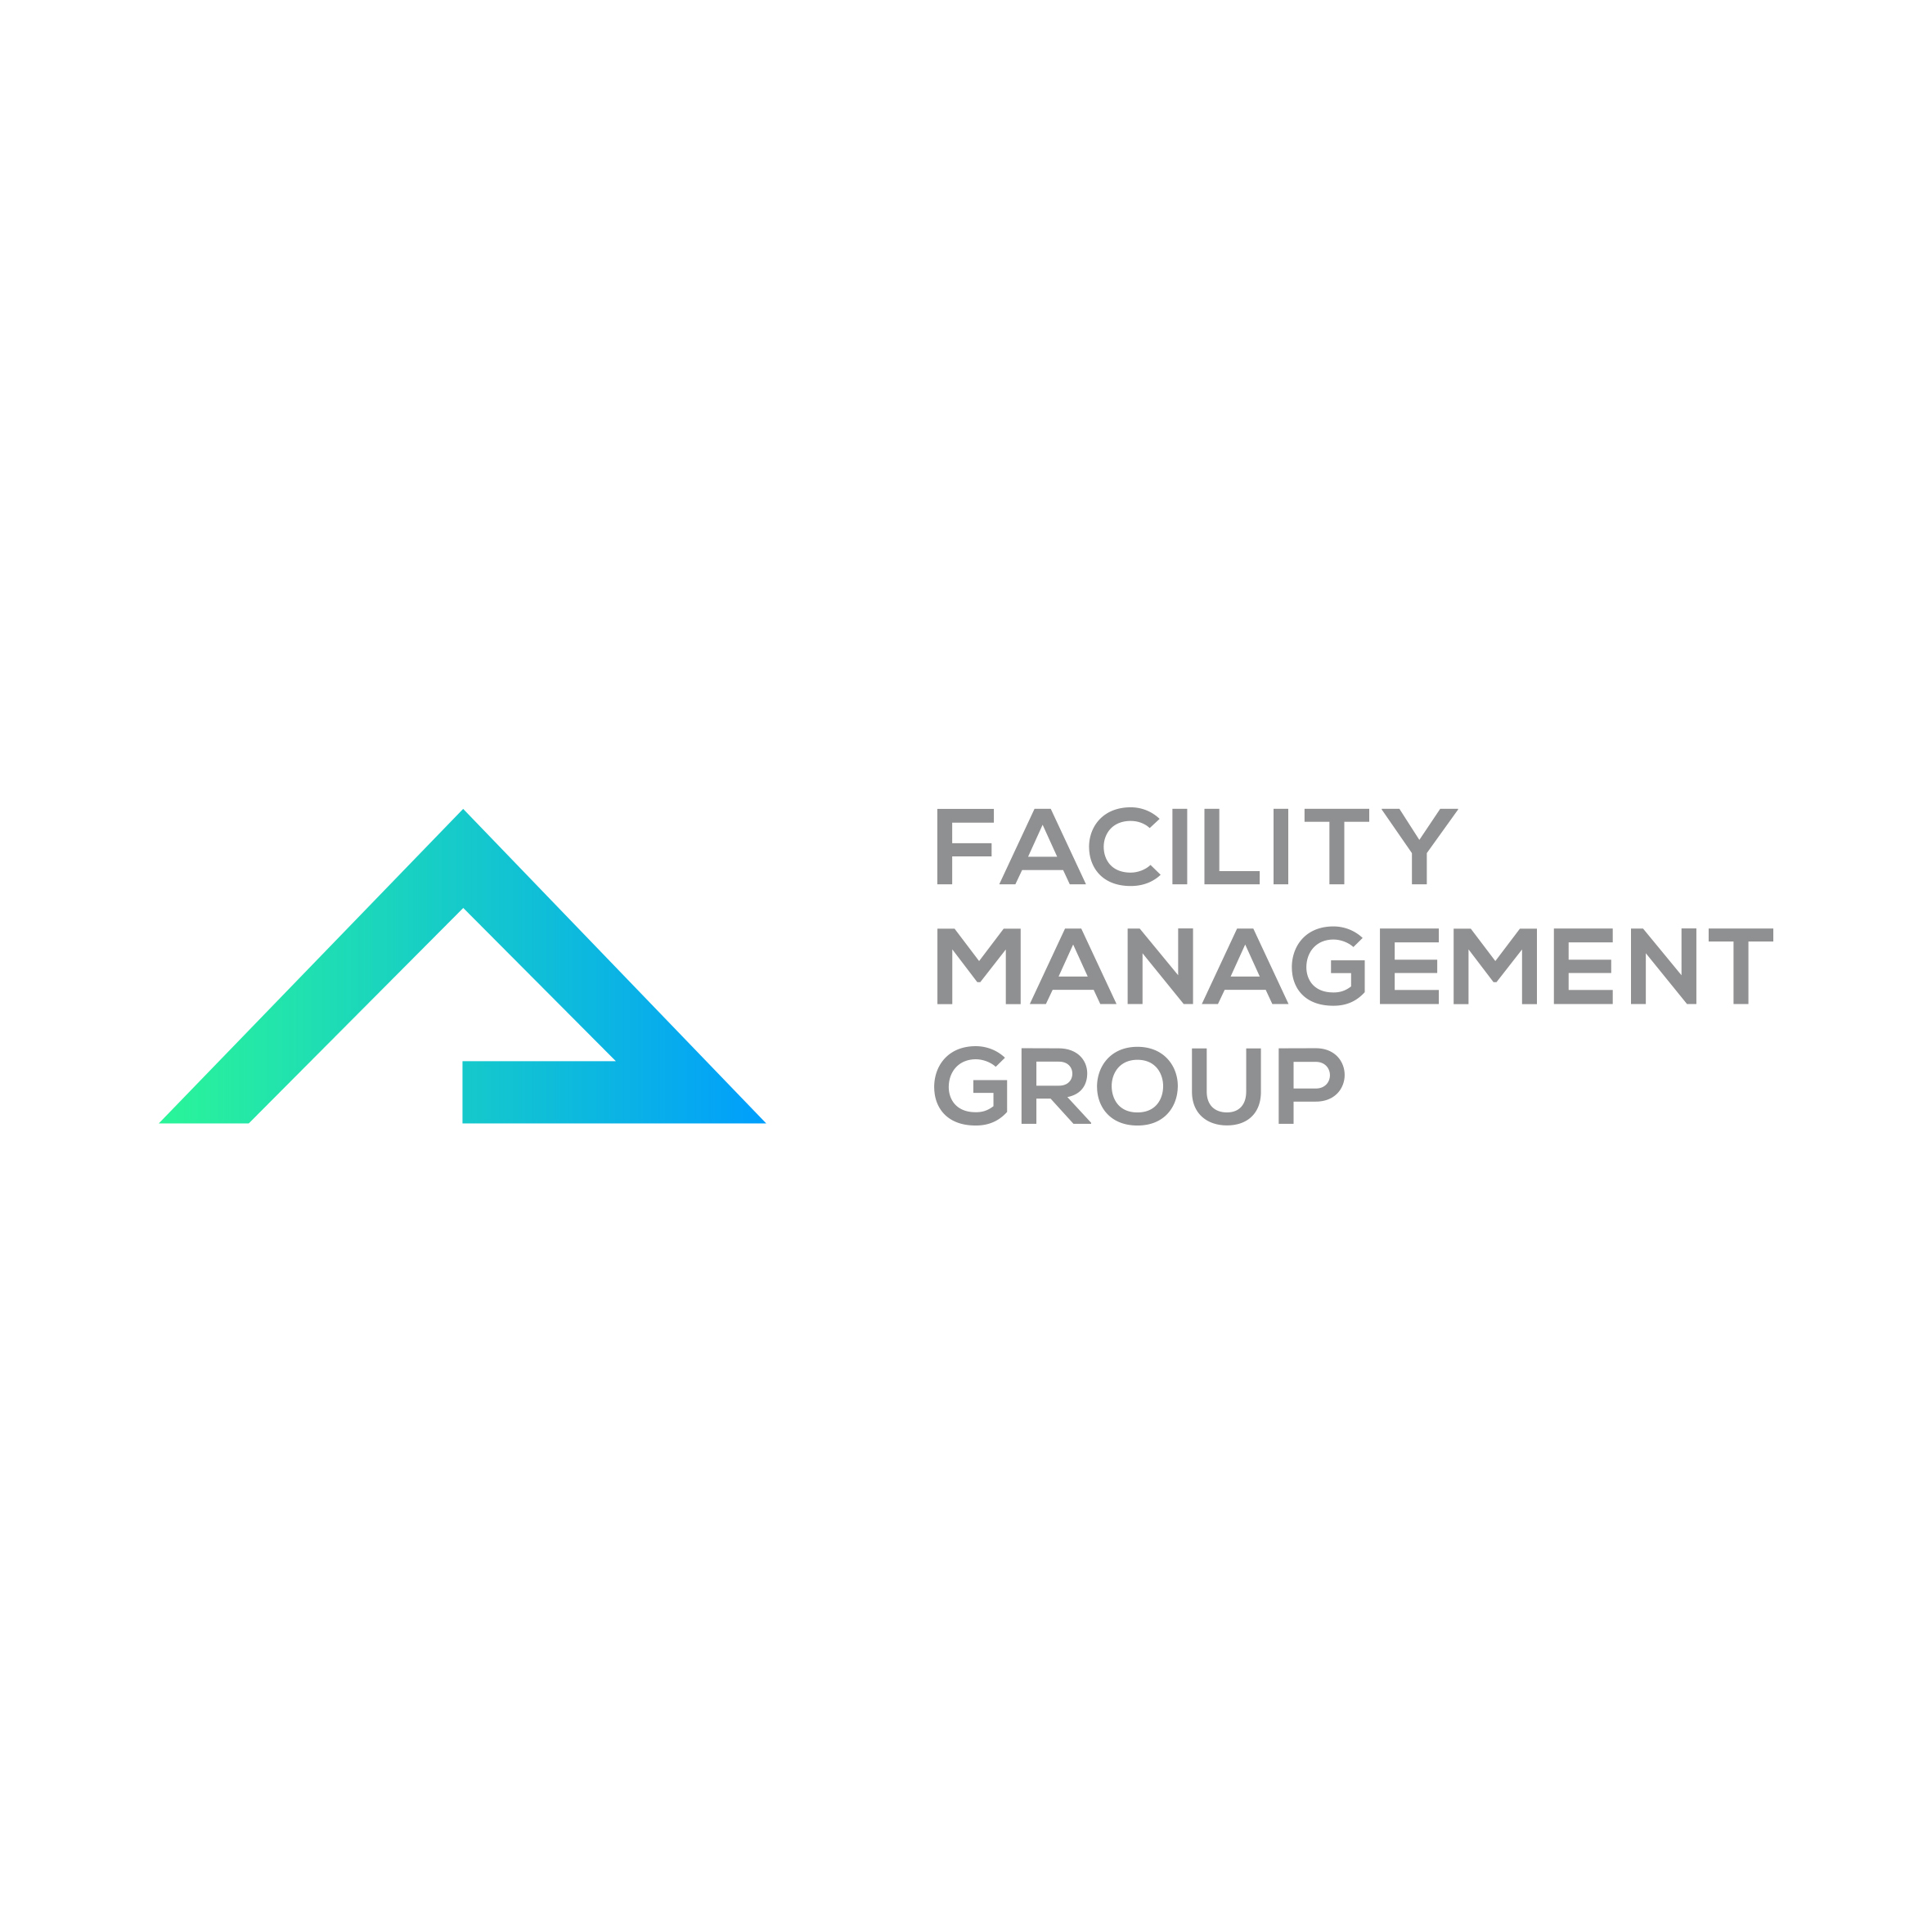 Facility Management Group